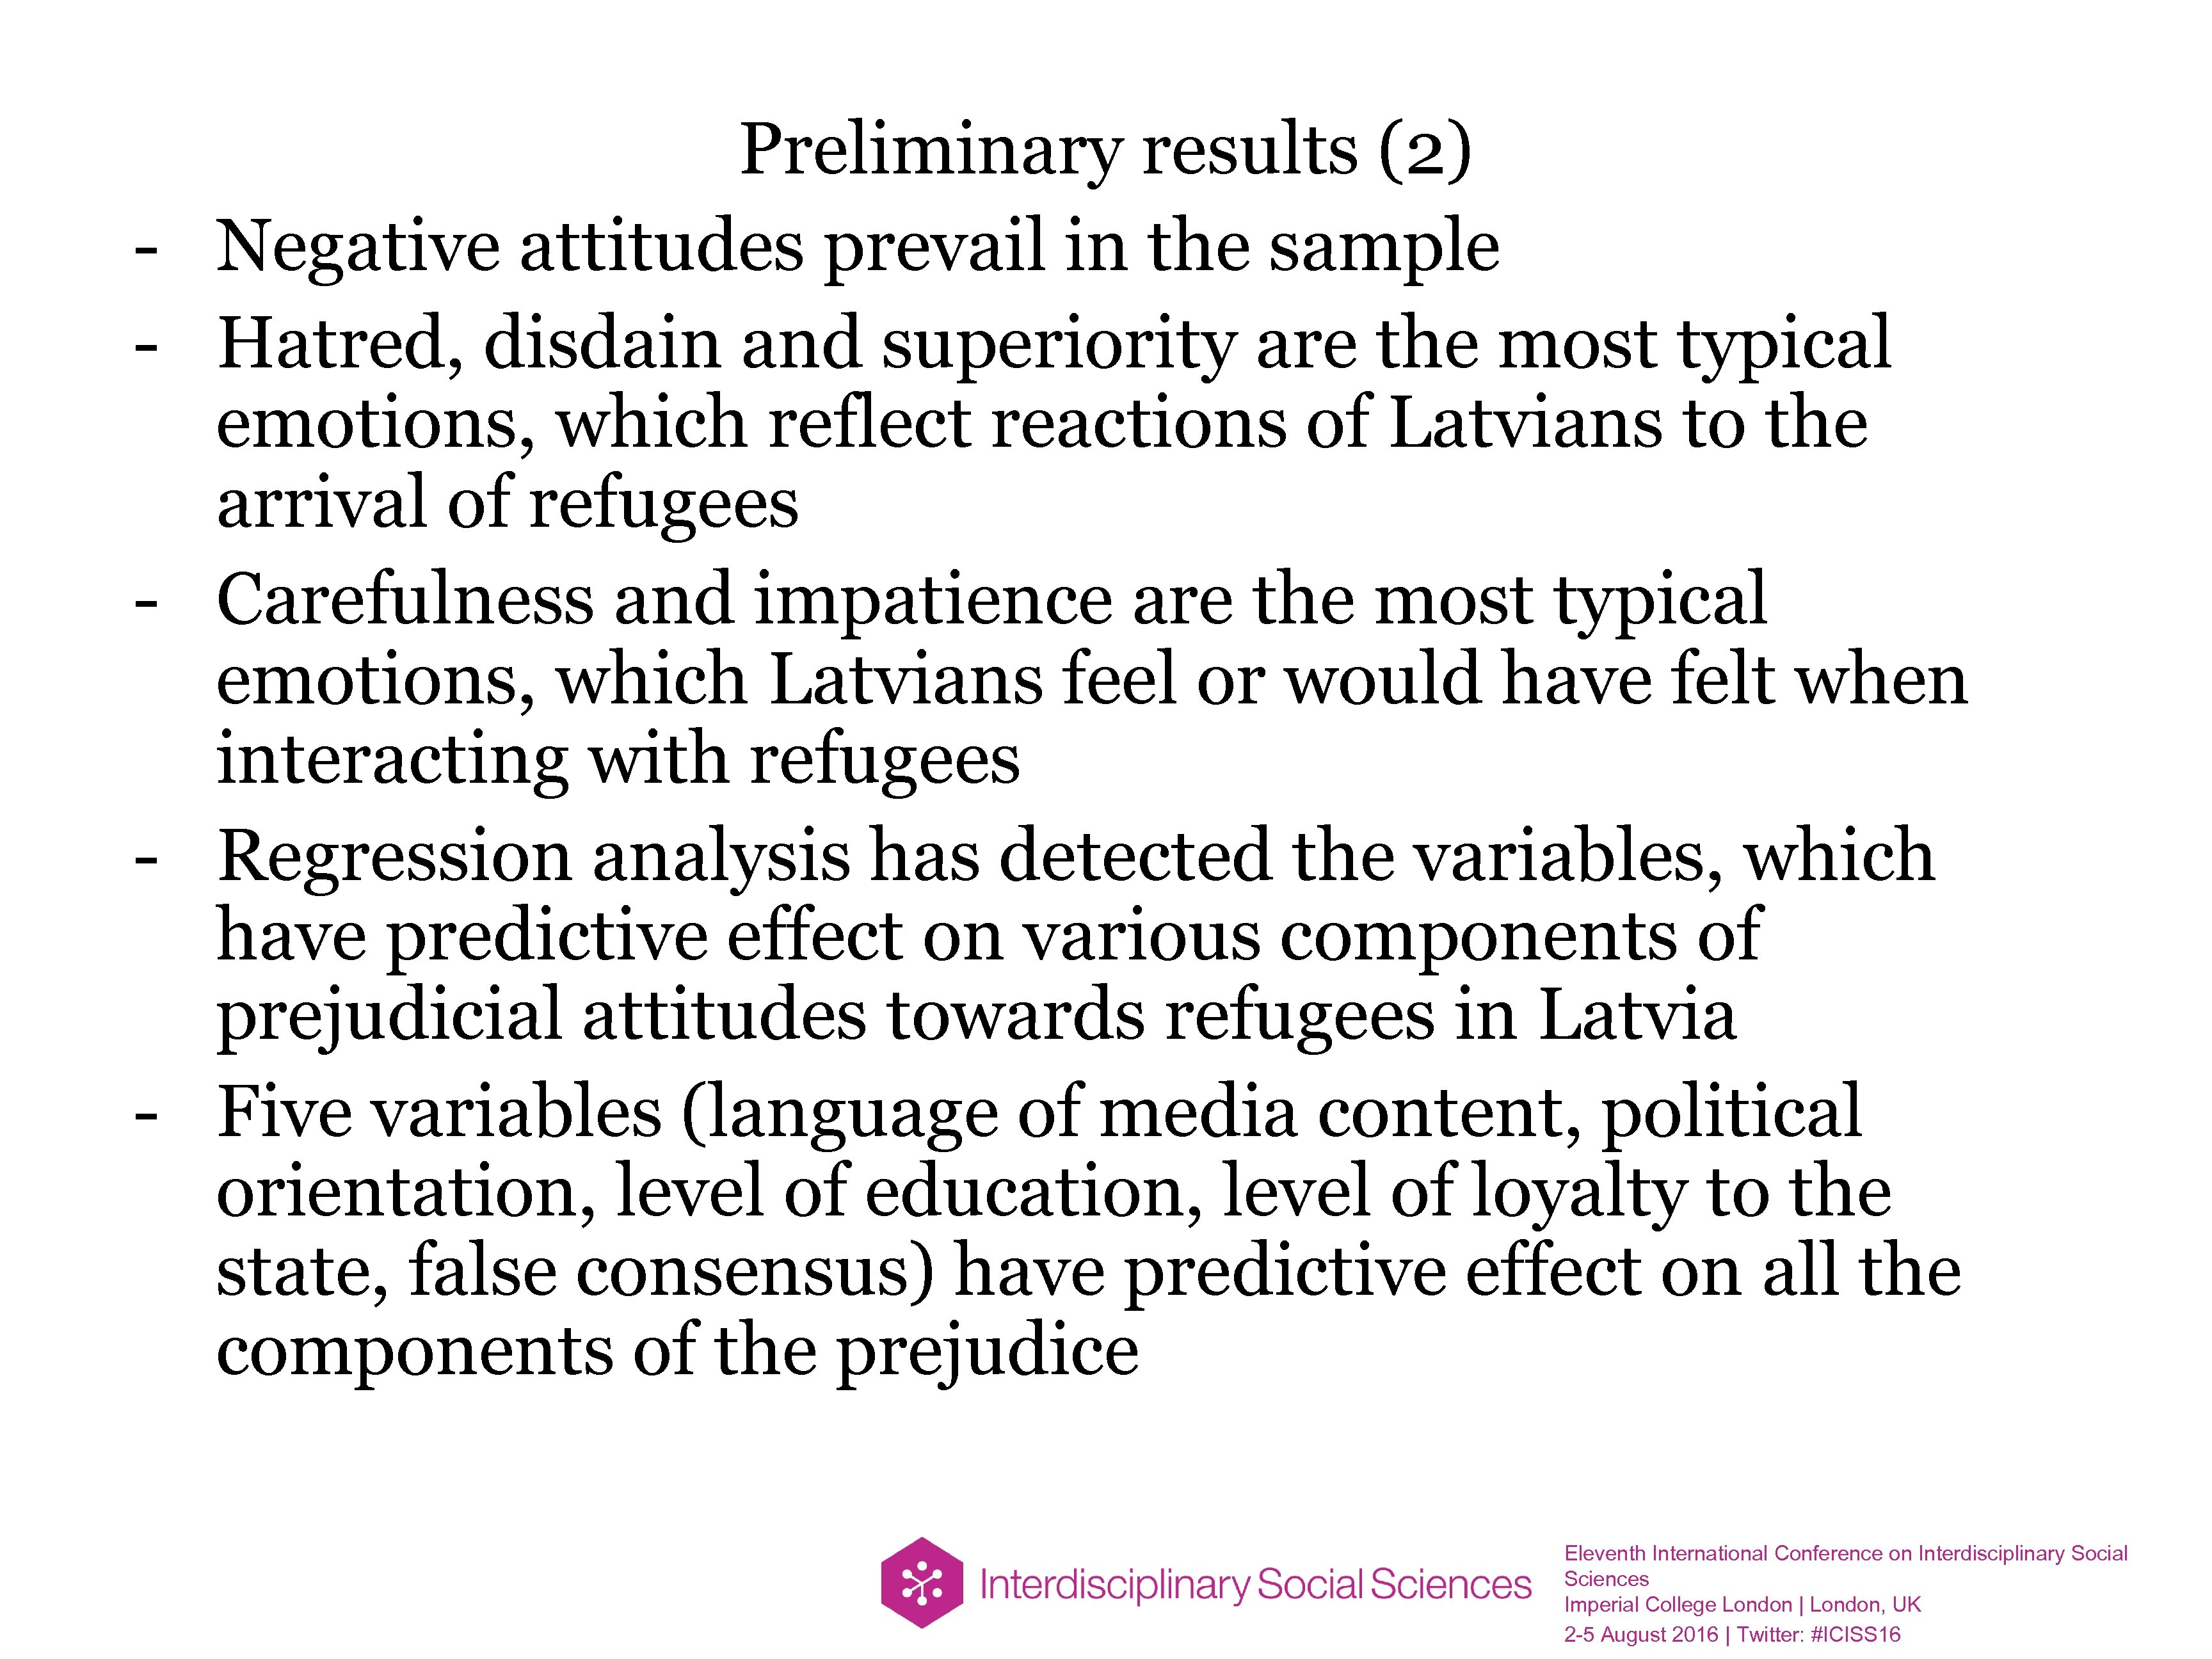 - Preliminary results (2) Negative attitudes prevail in the sample Hatred, disdain and superiority